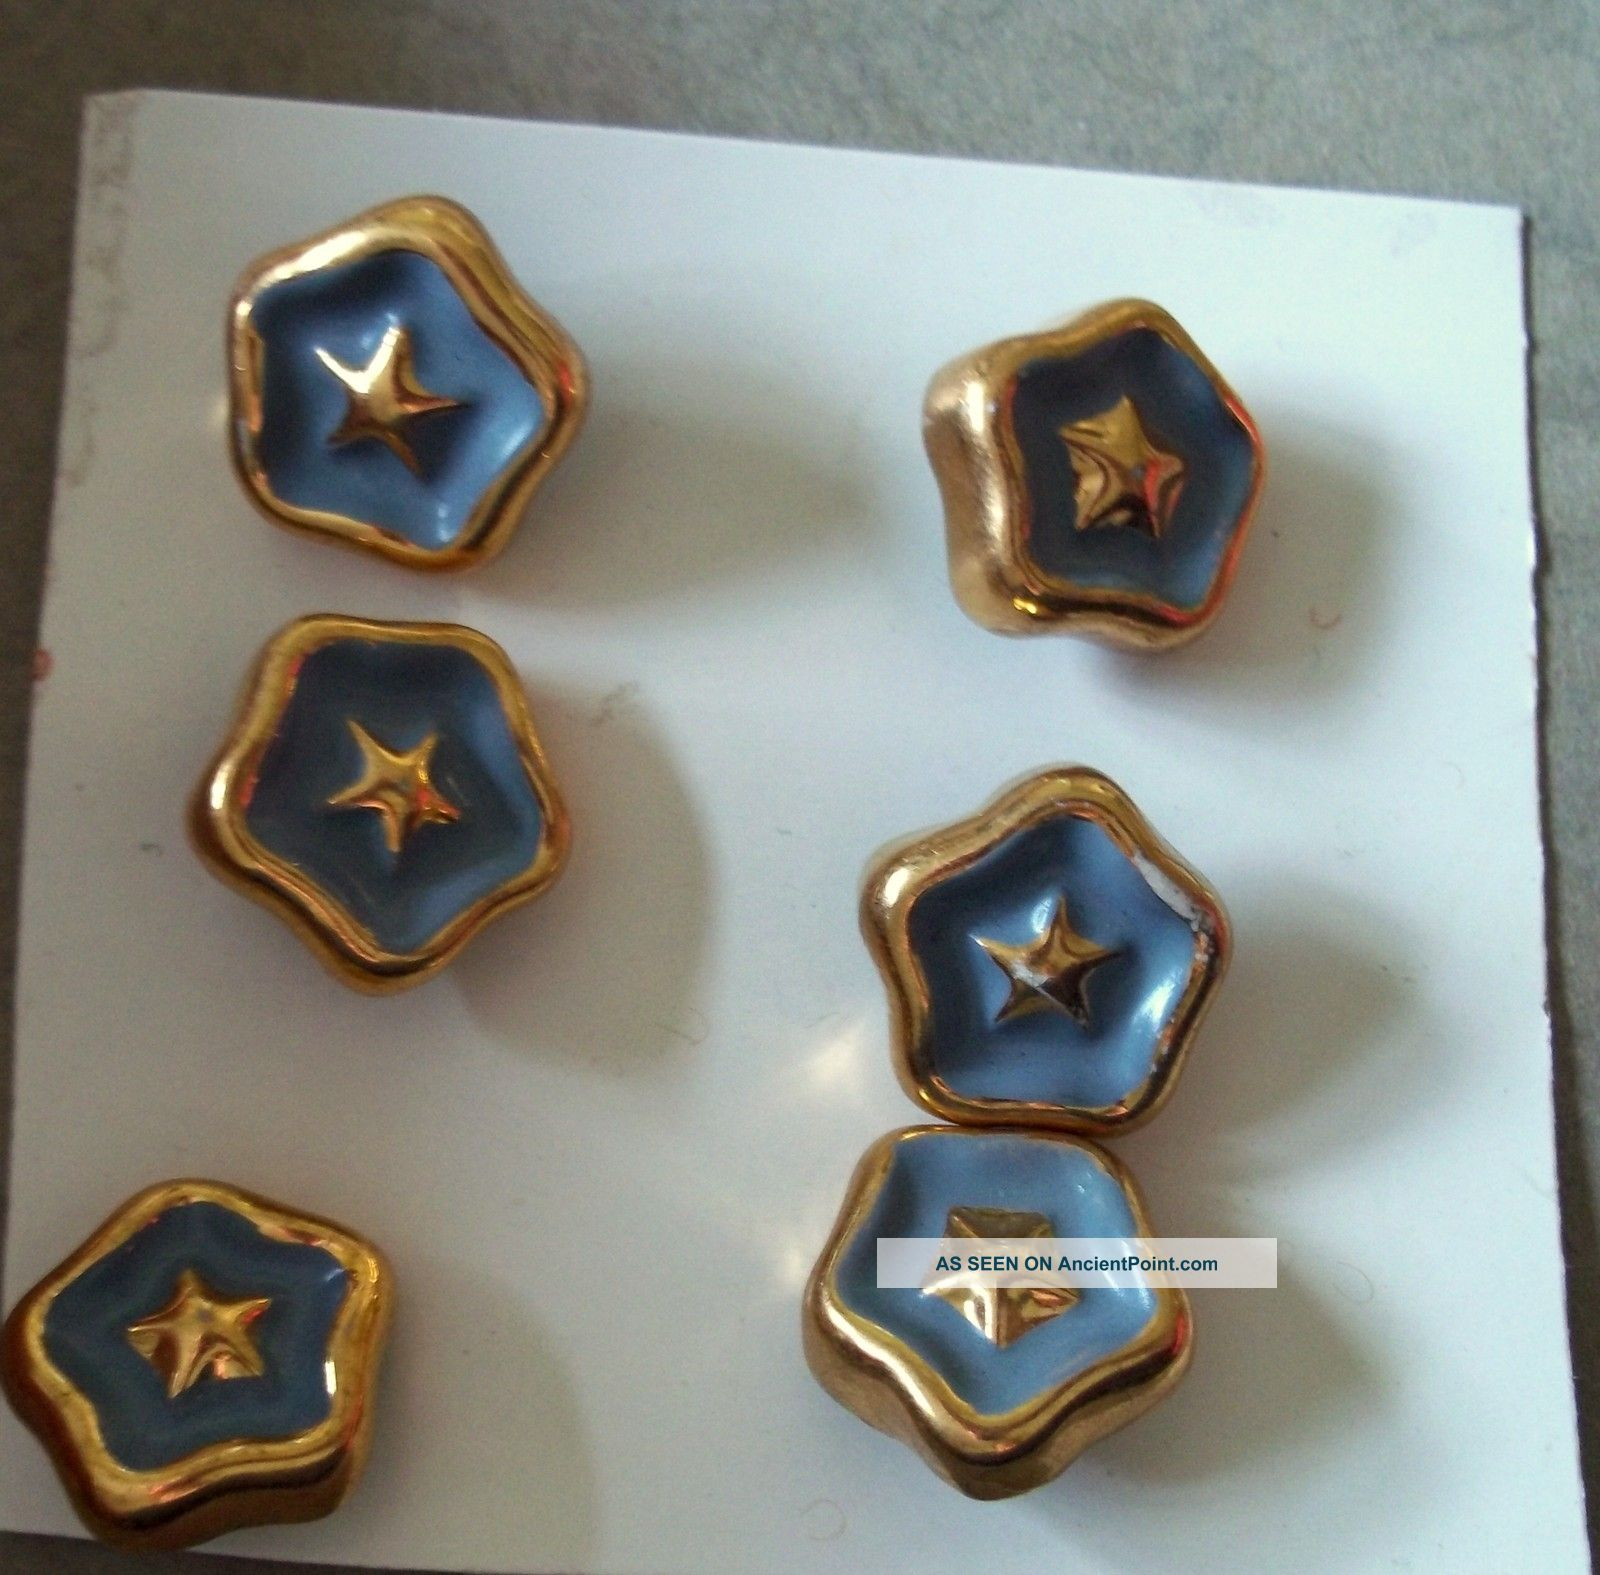 Card Of Six Vintage Sewing Buttons,  Star Shaped Gold Metal With Blue Enamel Buttons photo